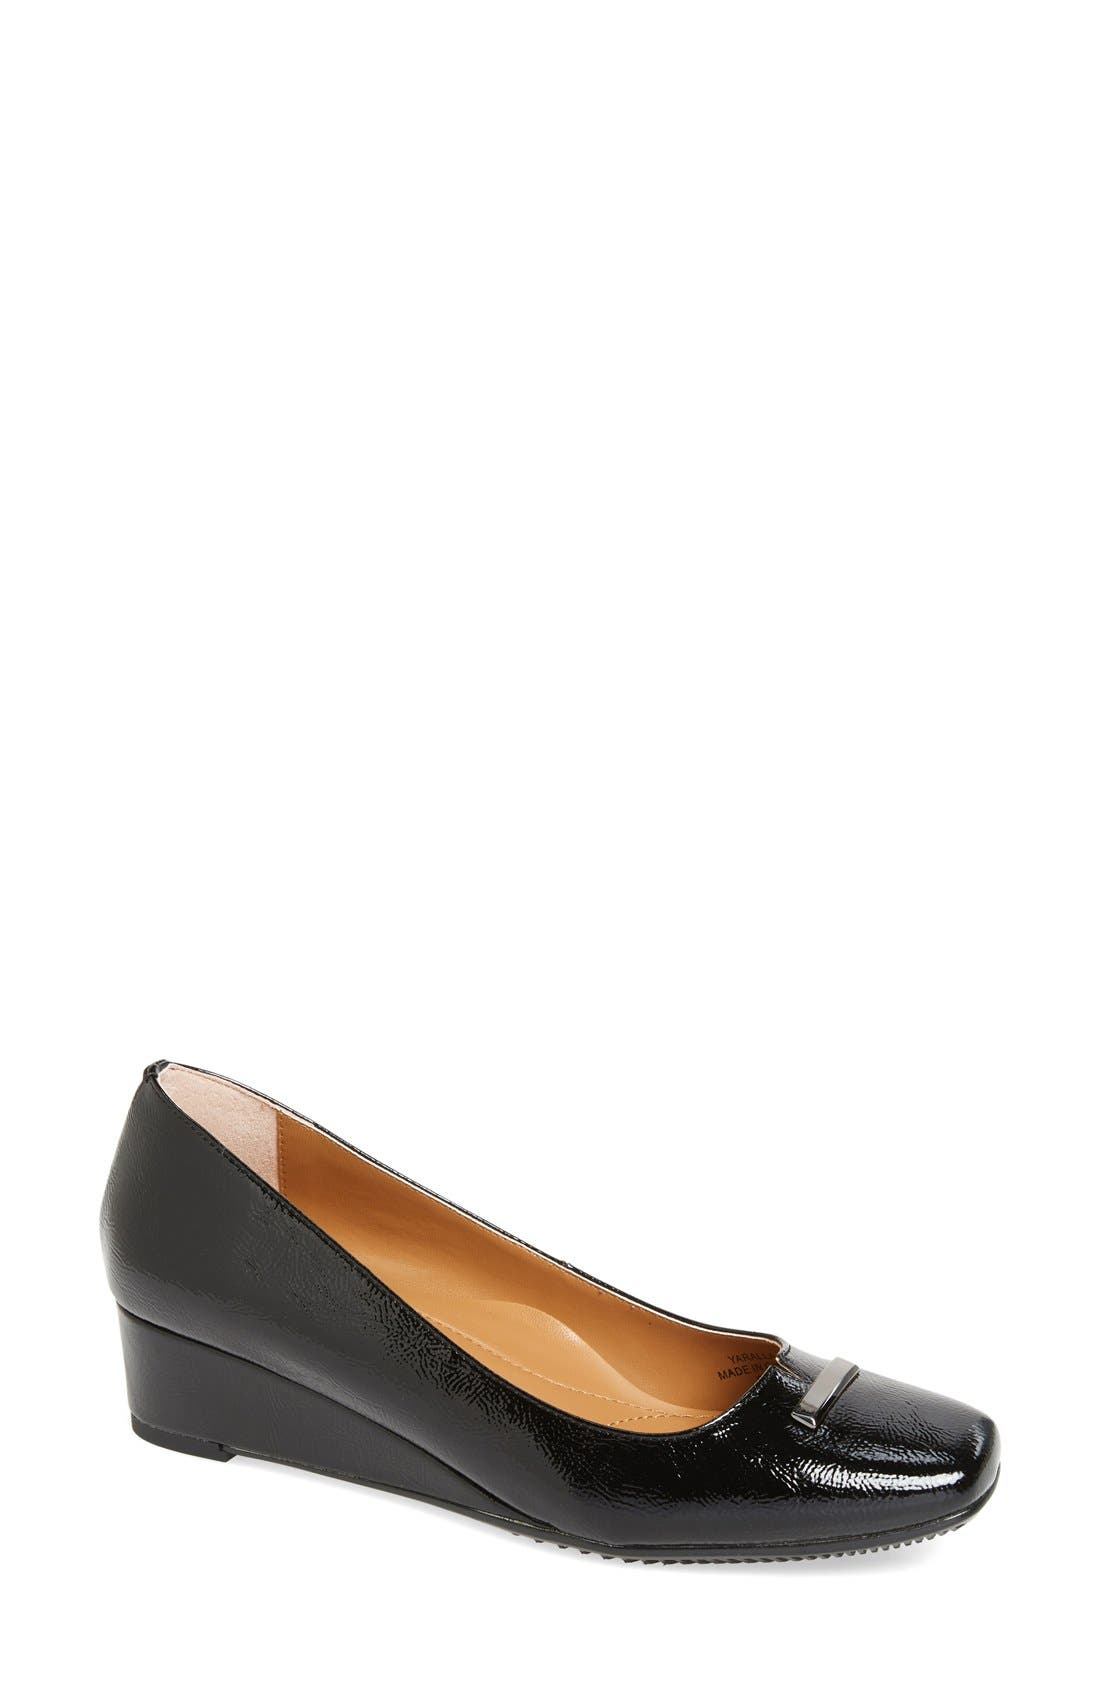 Yarall Square Toe Wedge,                         Main,                         color, Black Faux Patent